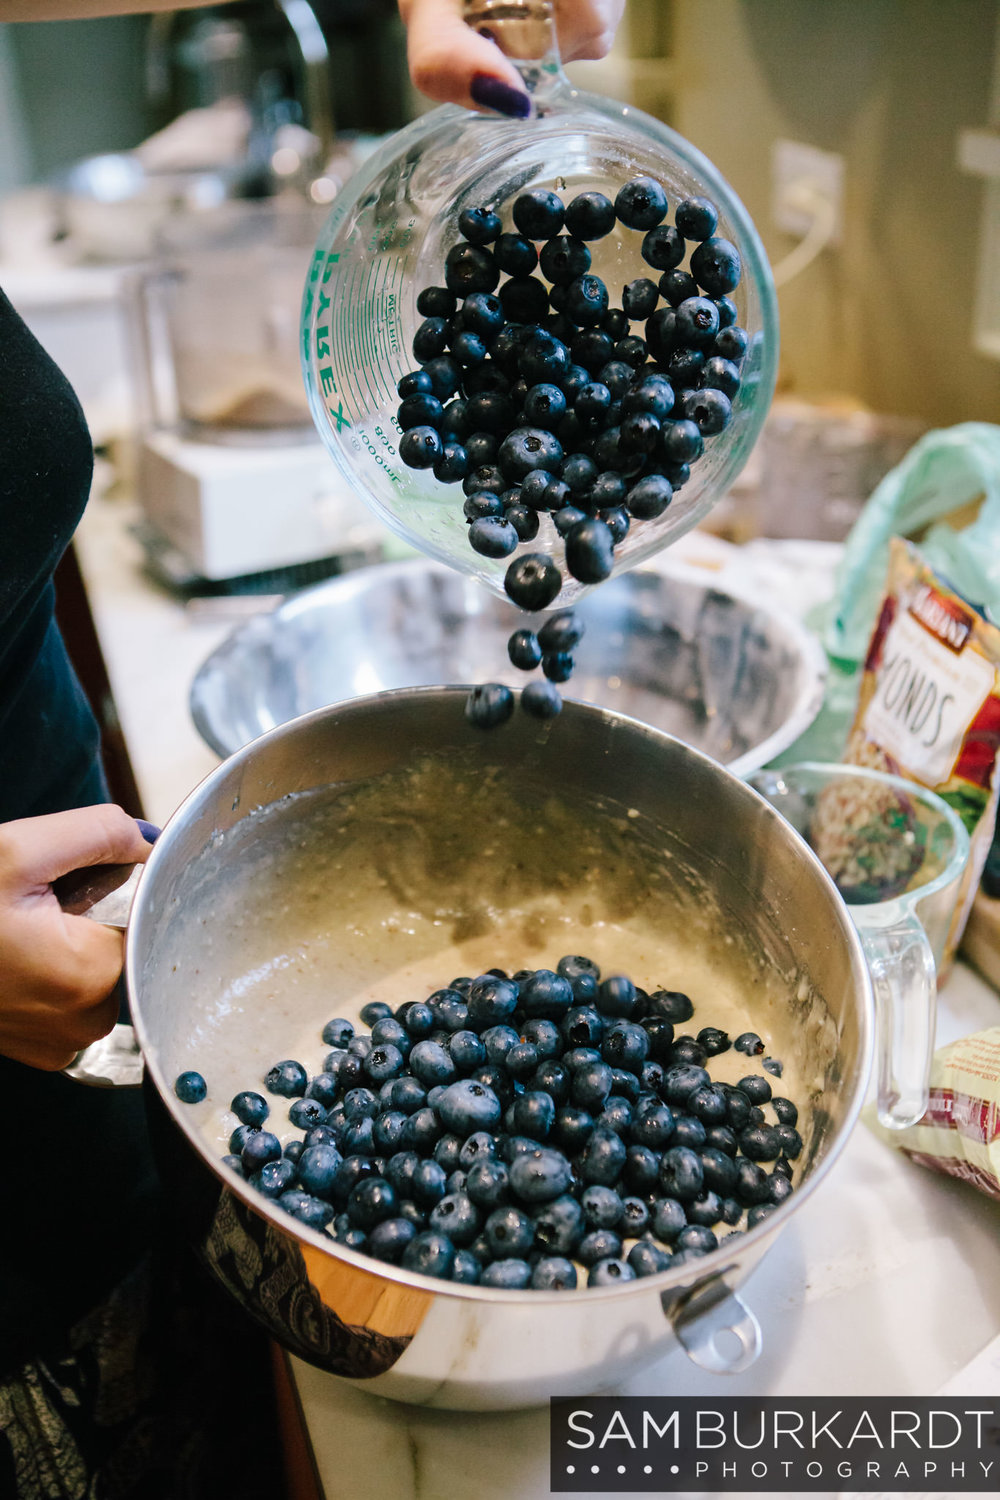 samburkardt_blueberries_kent_connecticut_024.jpg